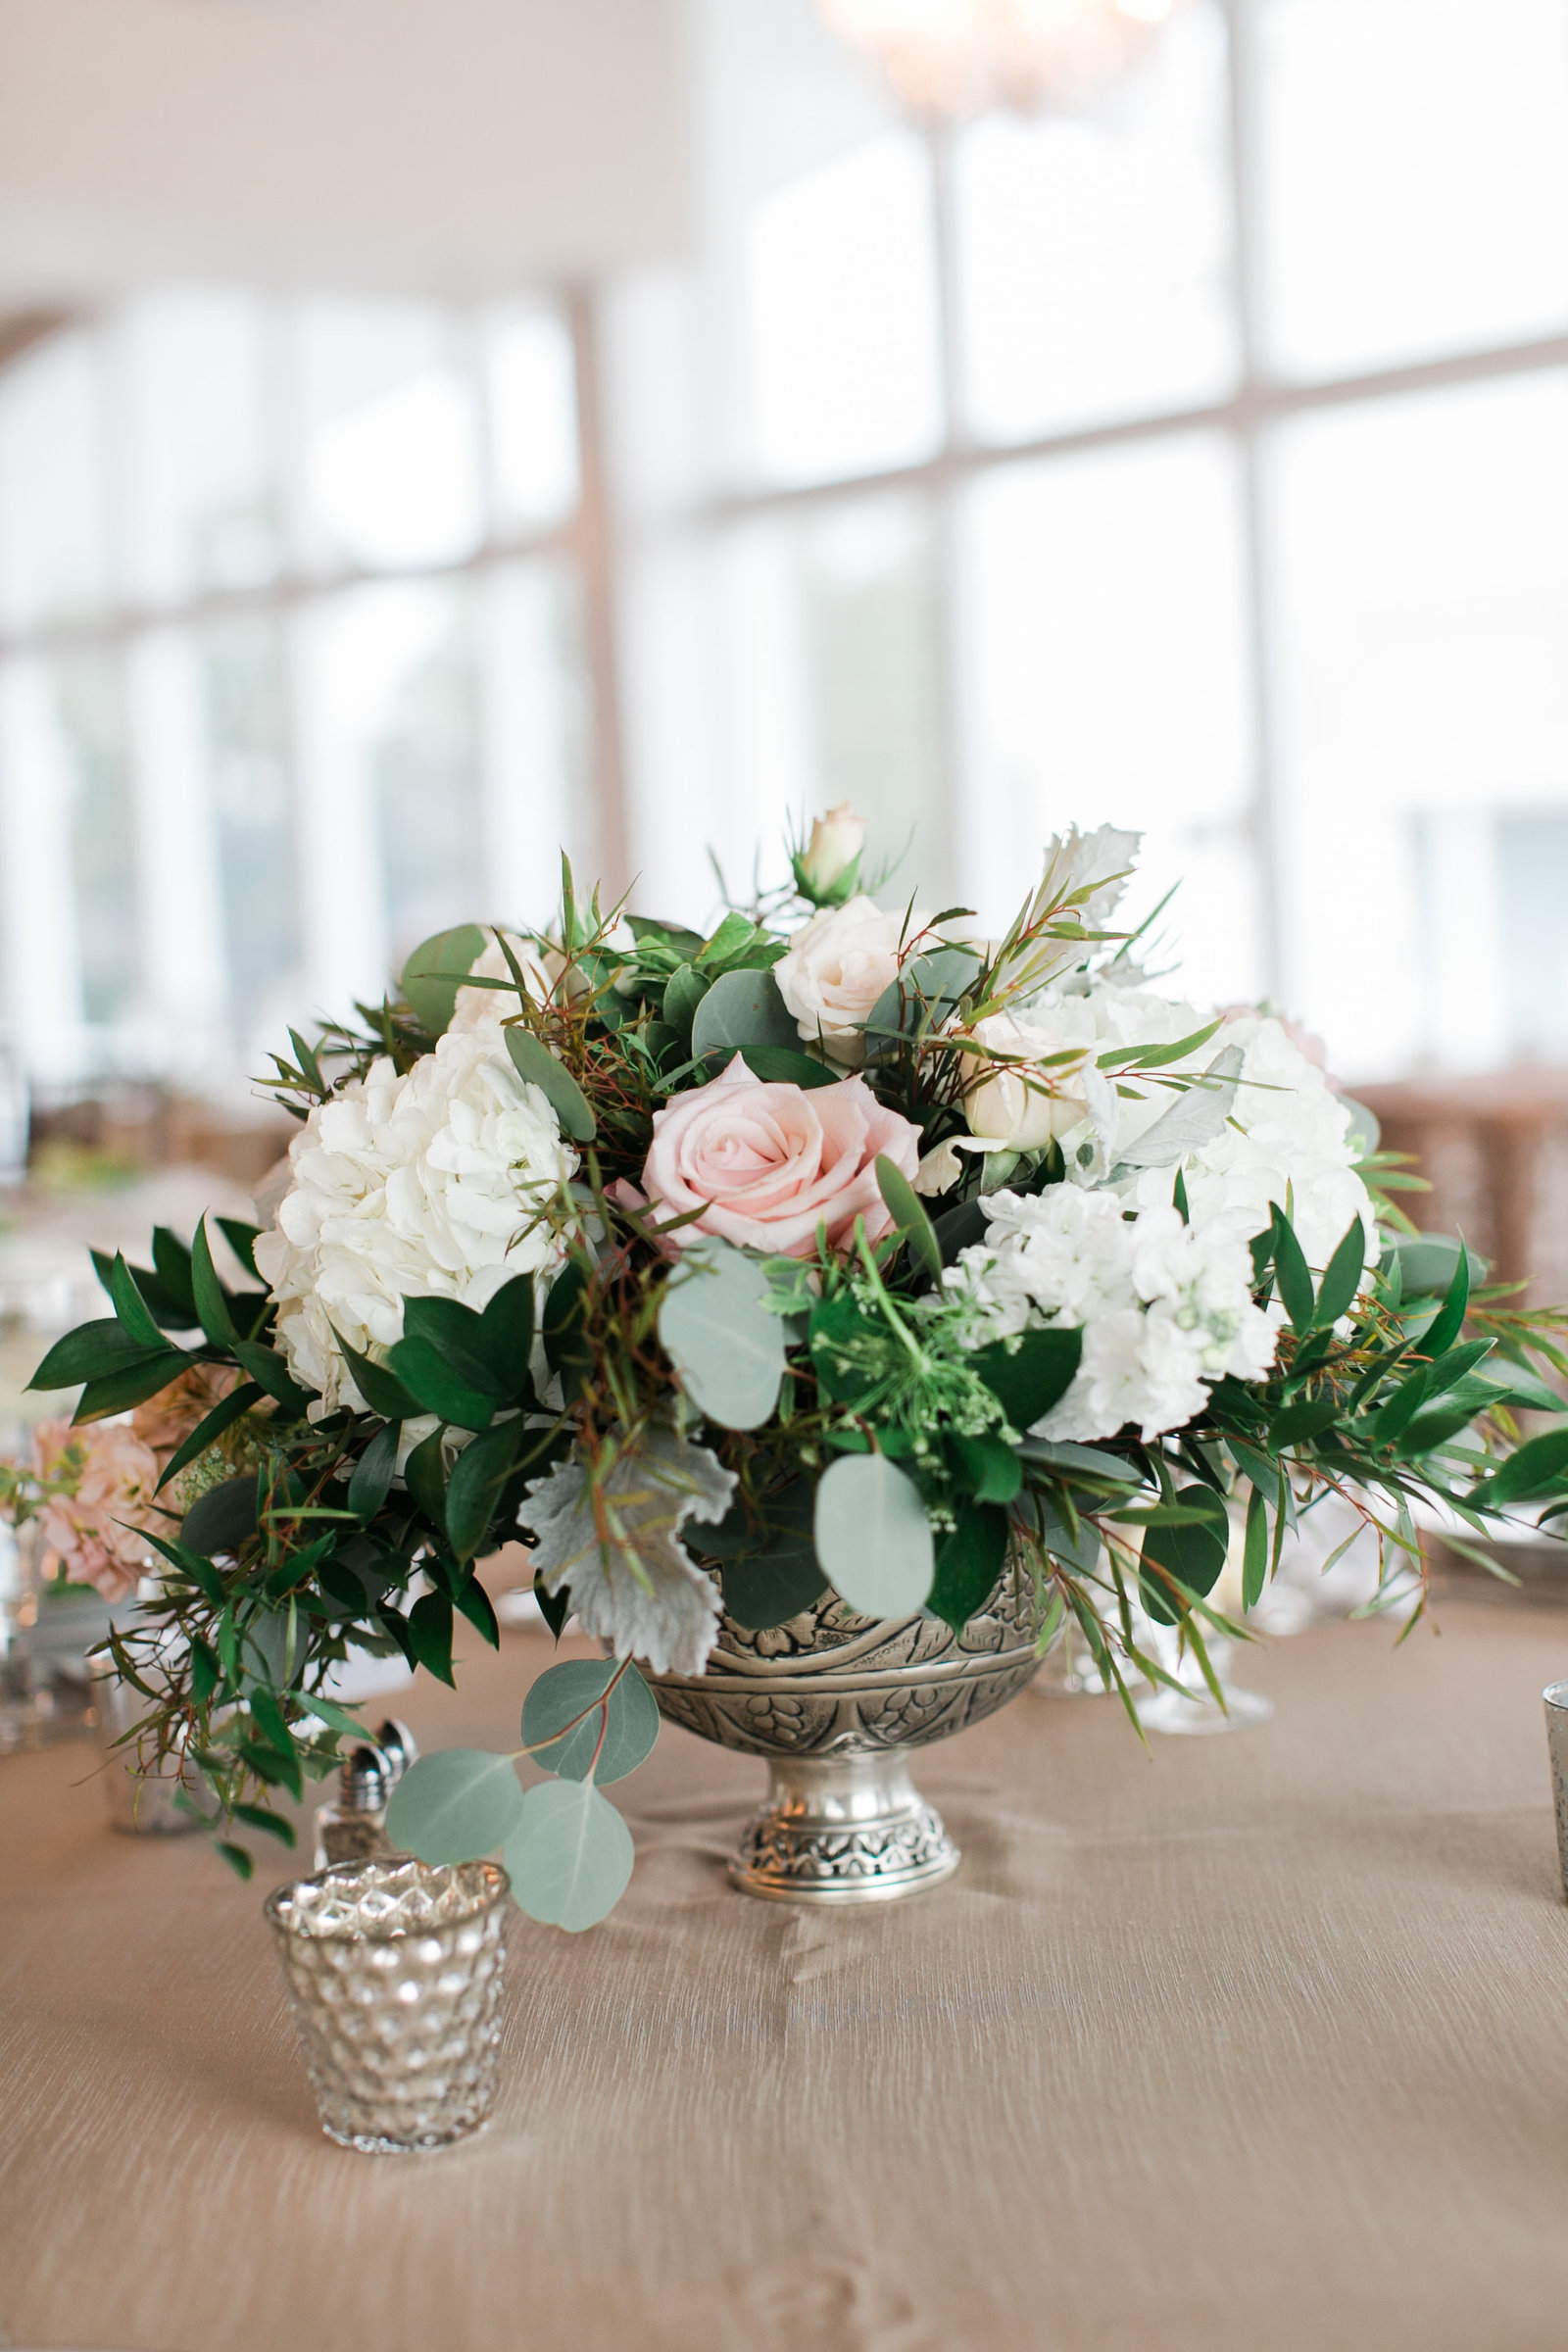 Water Table Wedding | Oyster, Peuter, Gold Wedding by Elizabeth Friske Photography | Nacho + Tina-18